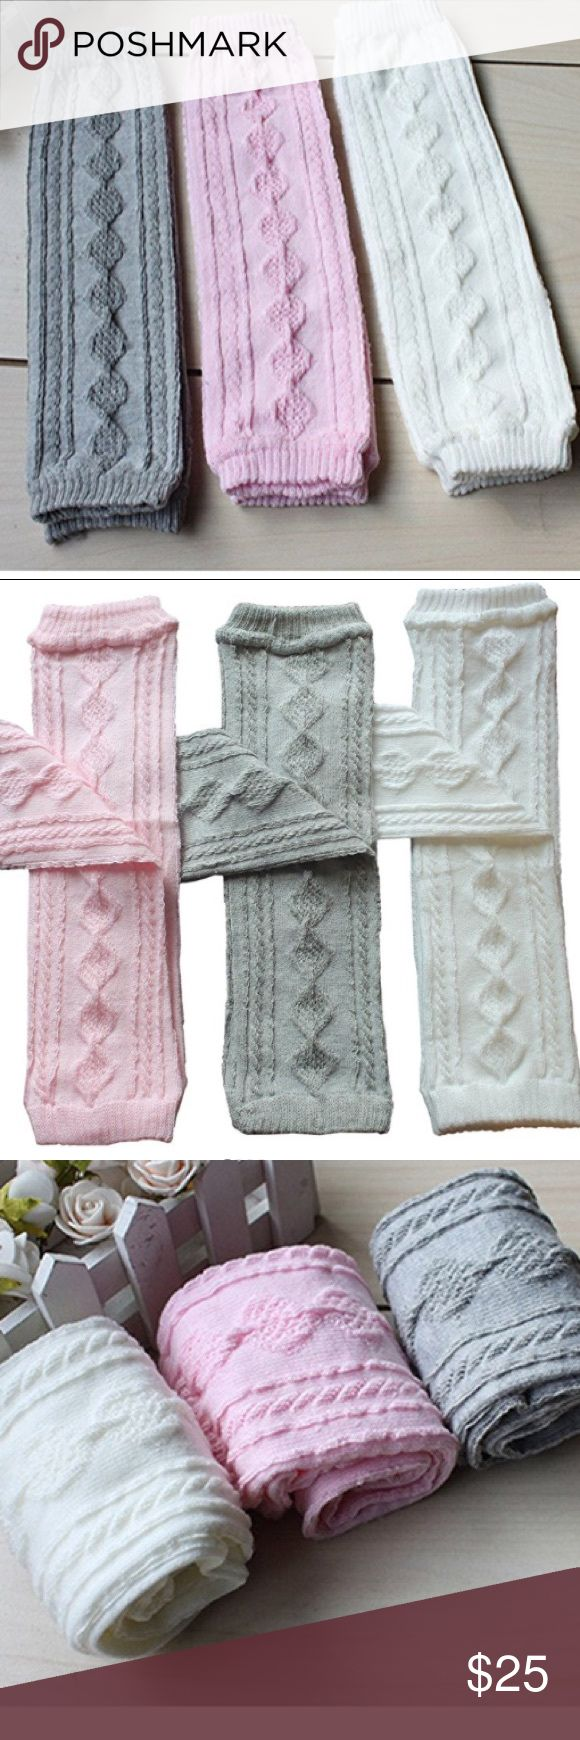 The 25 best baby toddler socks tights ideas on pinterest bundle of 3 baby toddler boot socksleg warmers bankloansurffo Image collections